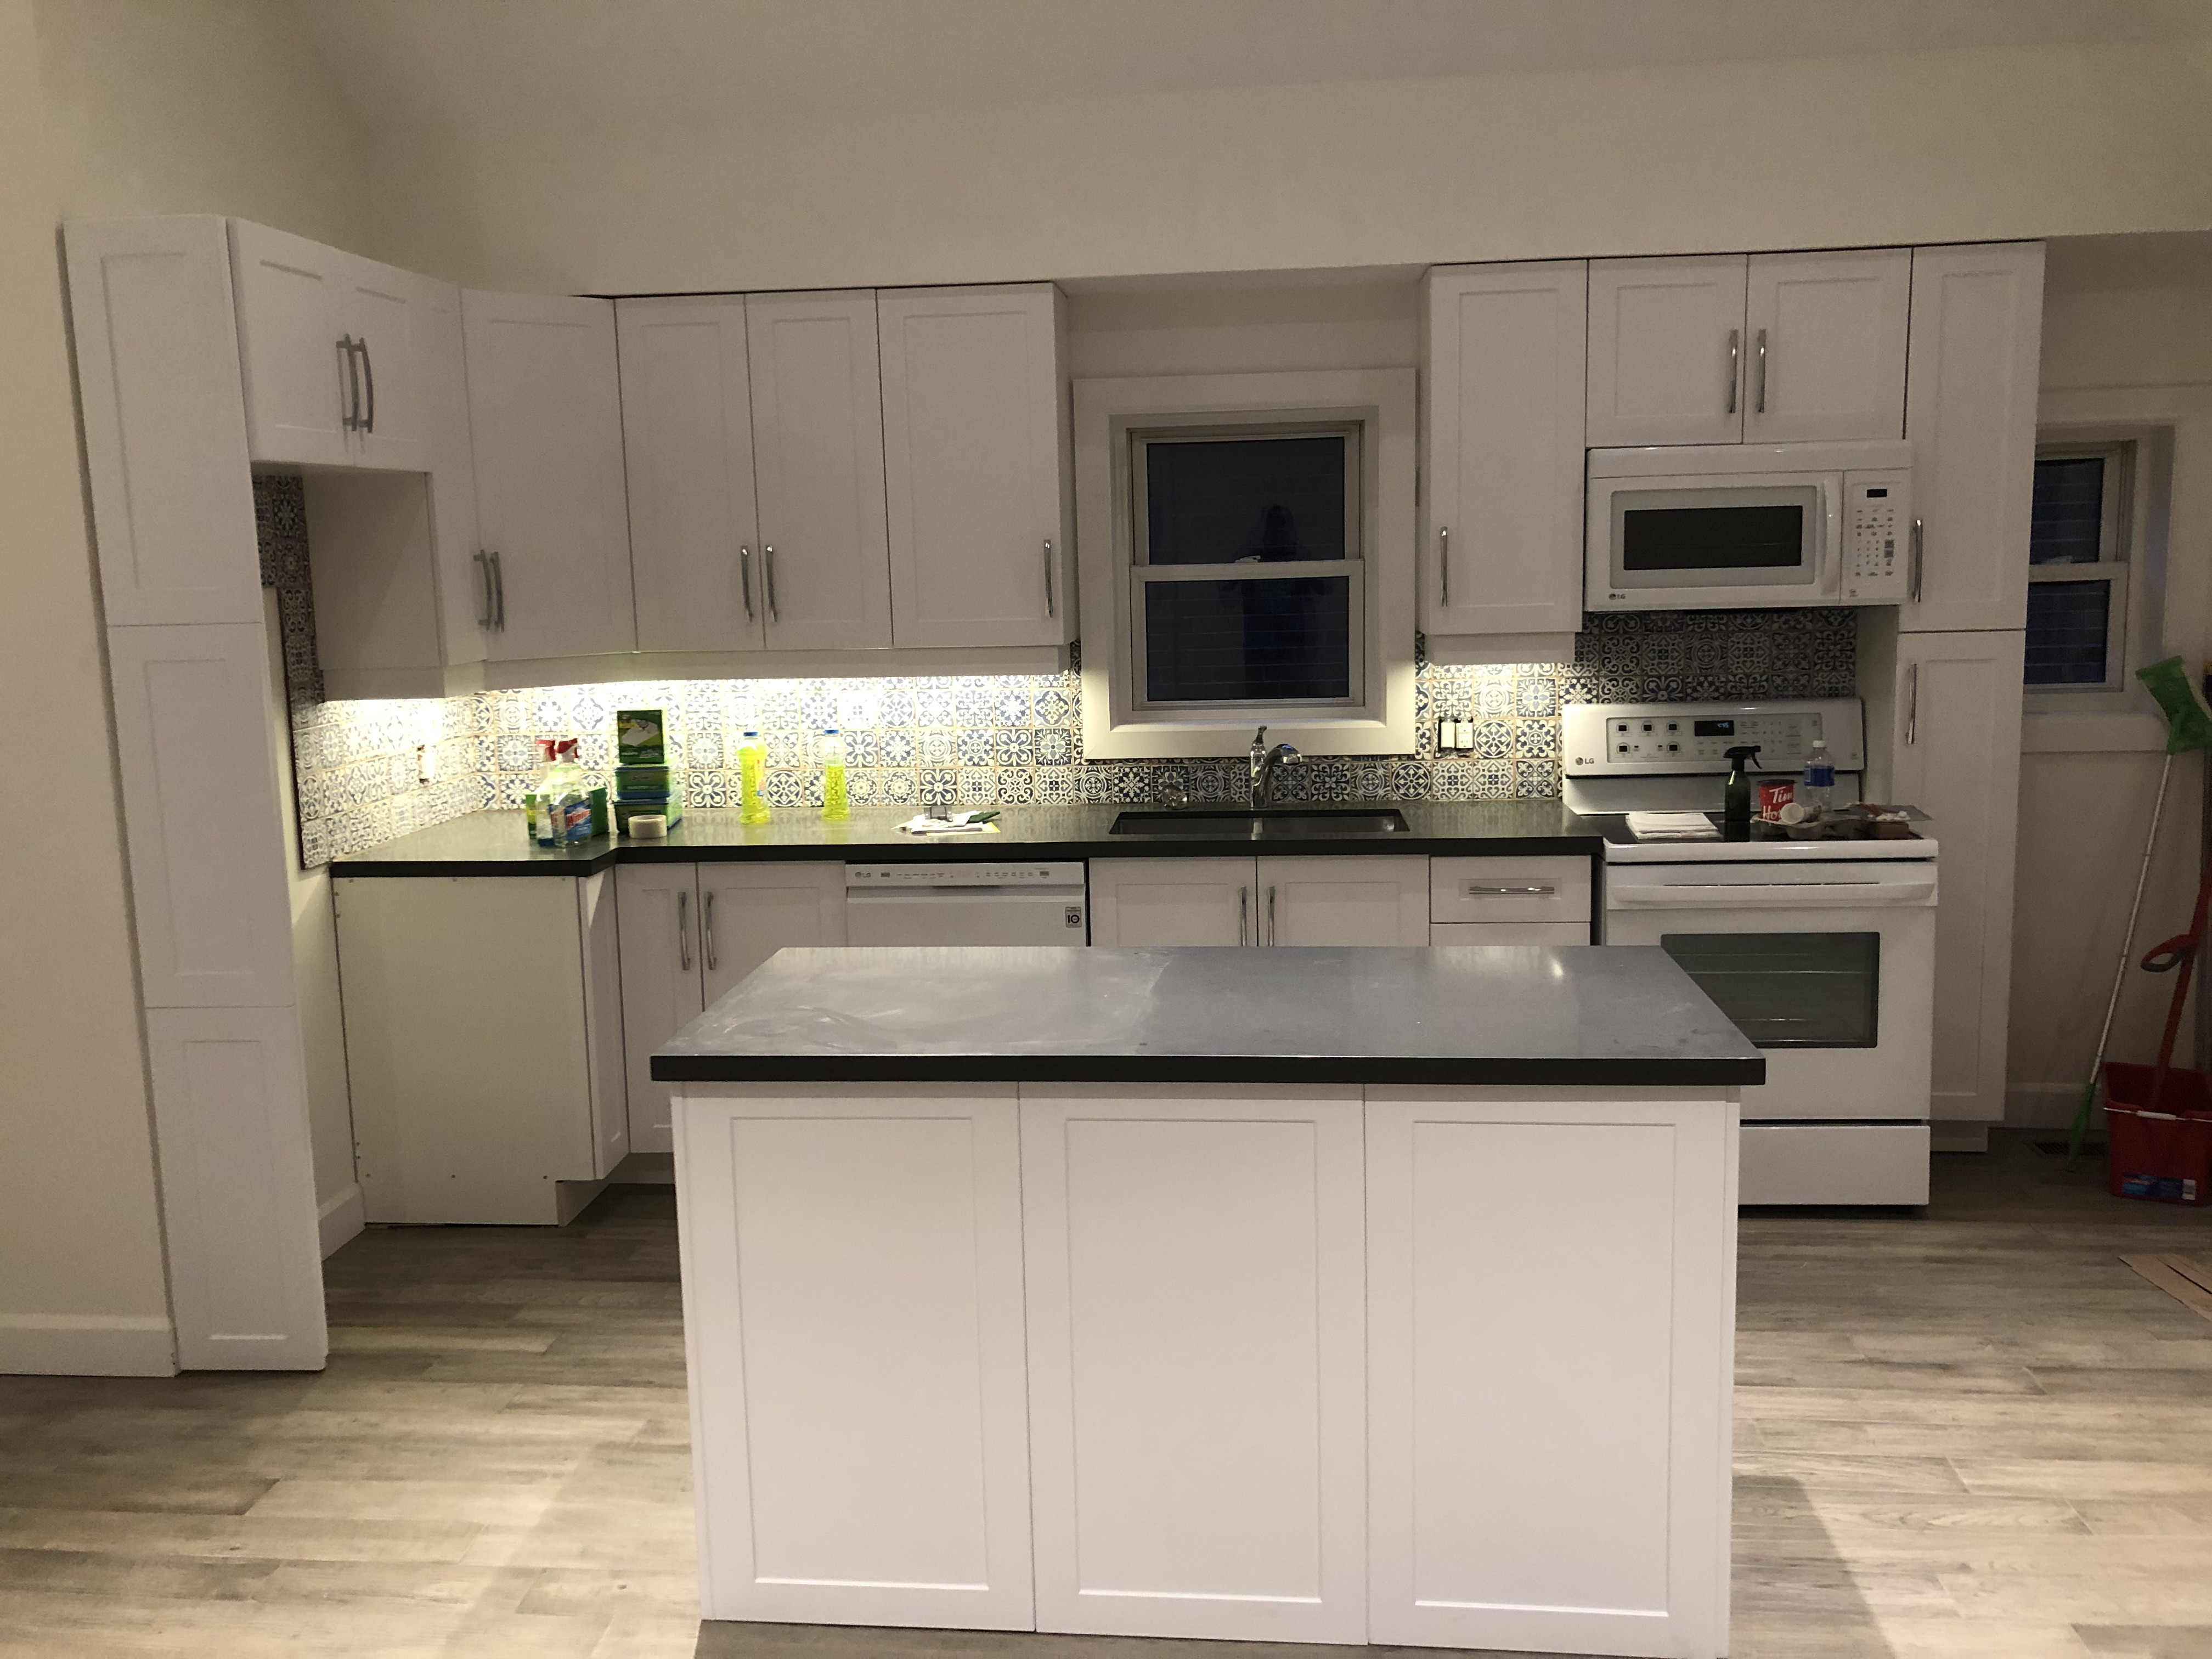 matching your cabinets to your interior